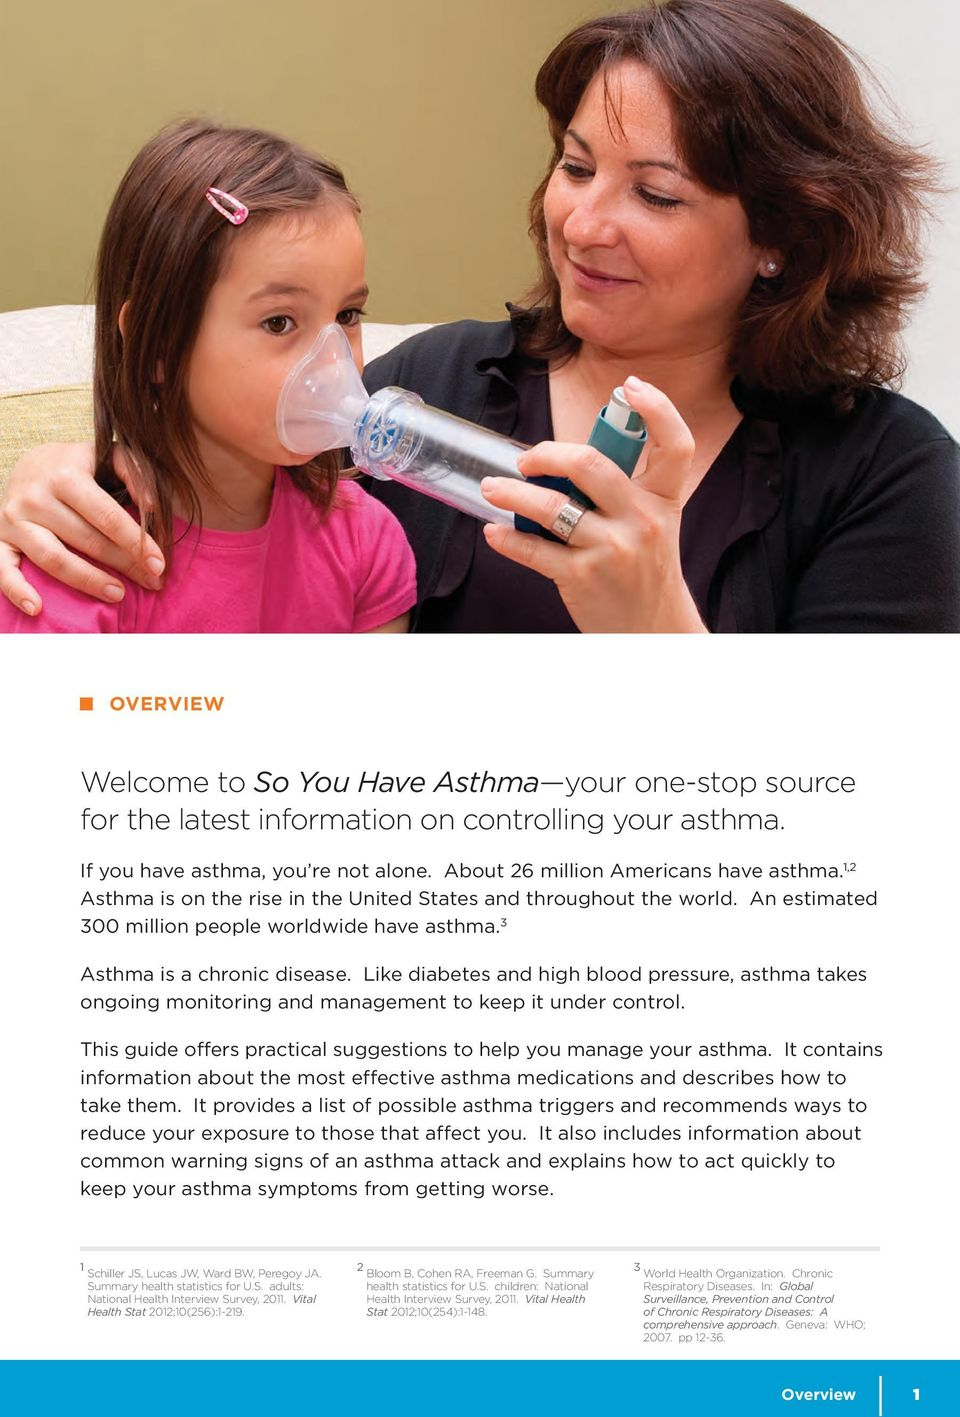 Like diabetes and high blood pressure, asthma takes ongoing monitoring and management to keep it under control. This guide offers practical suggestions to help you manage your asthma.